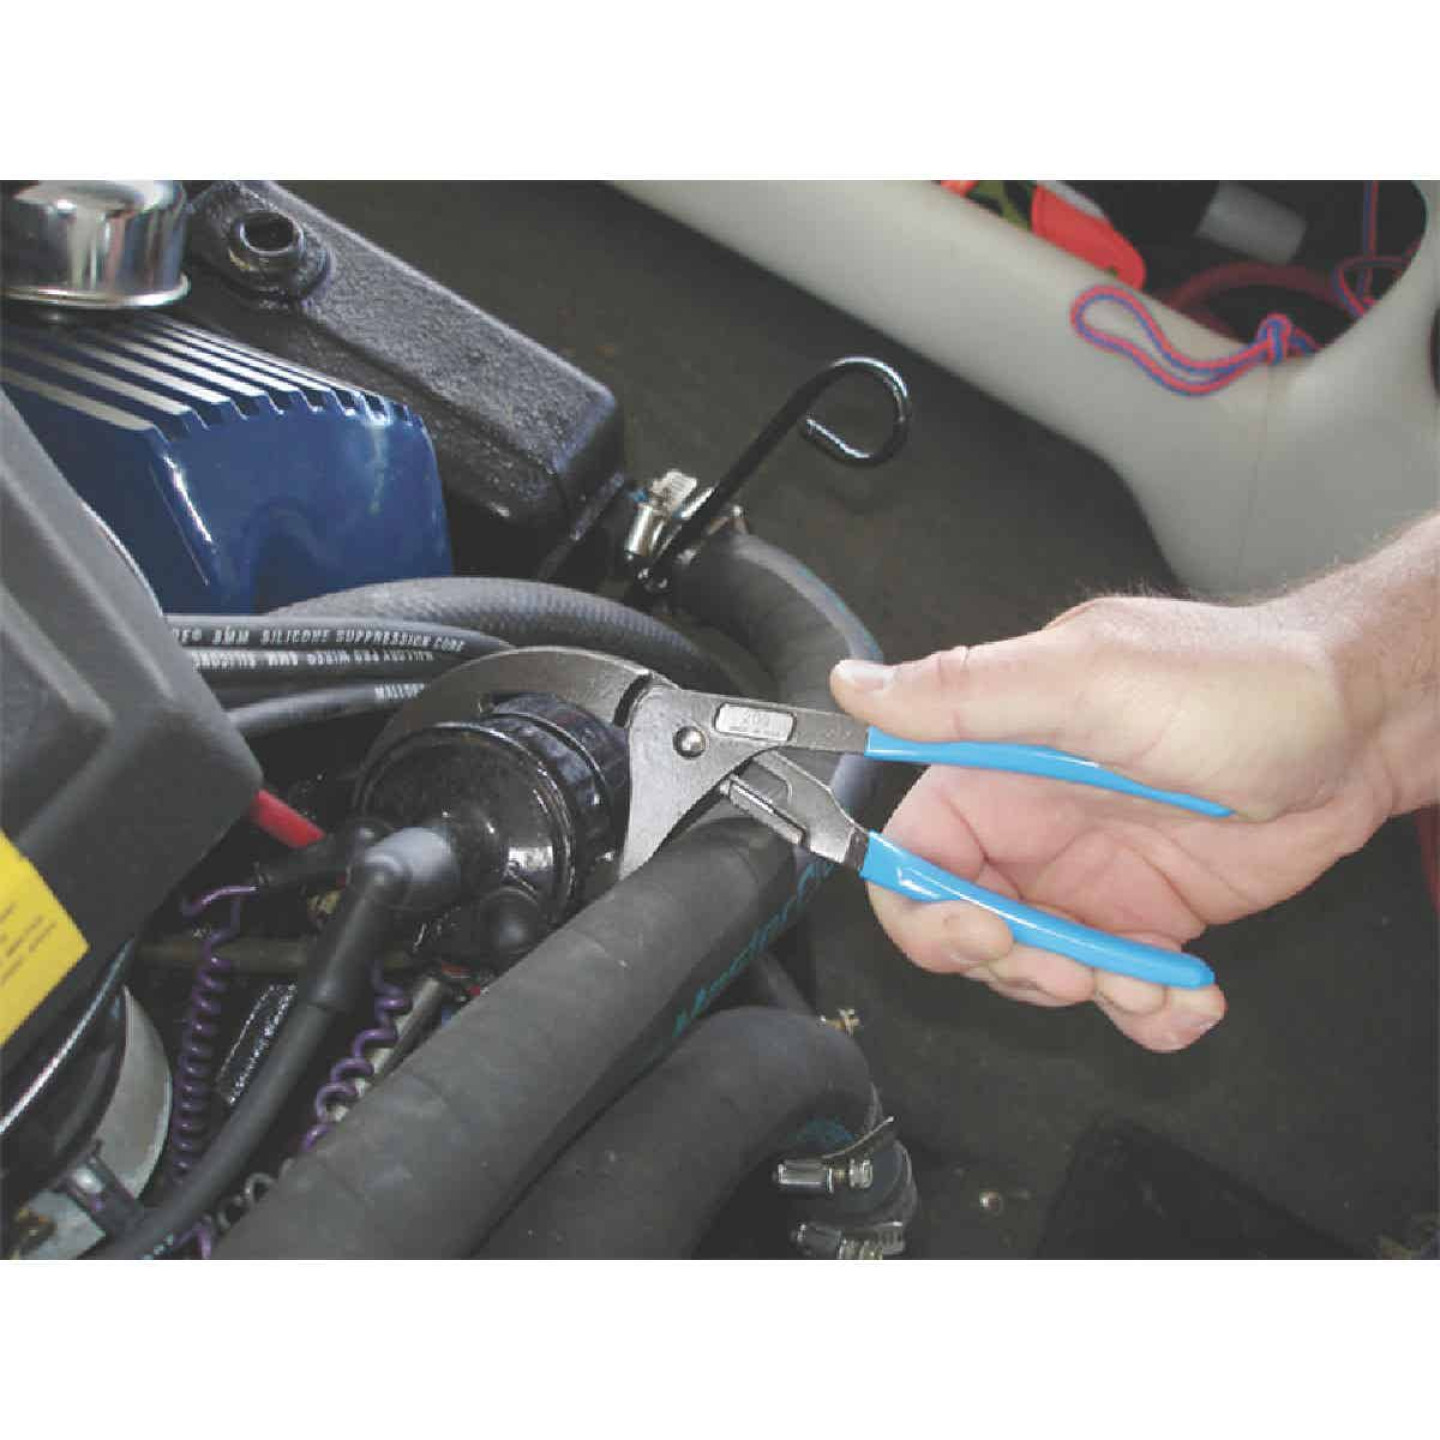 Channellock 9 In. Steel PVC/Oil Filter Pliers Image 5